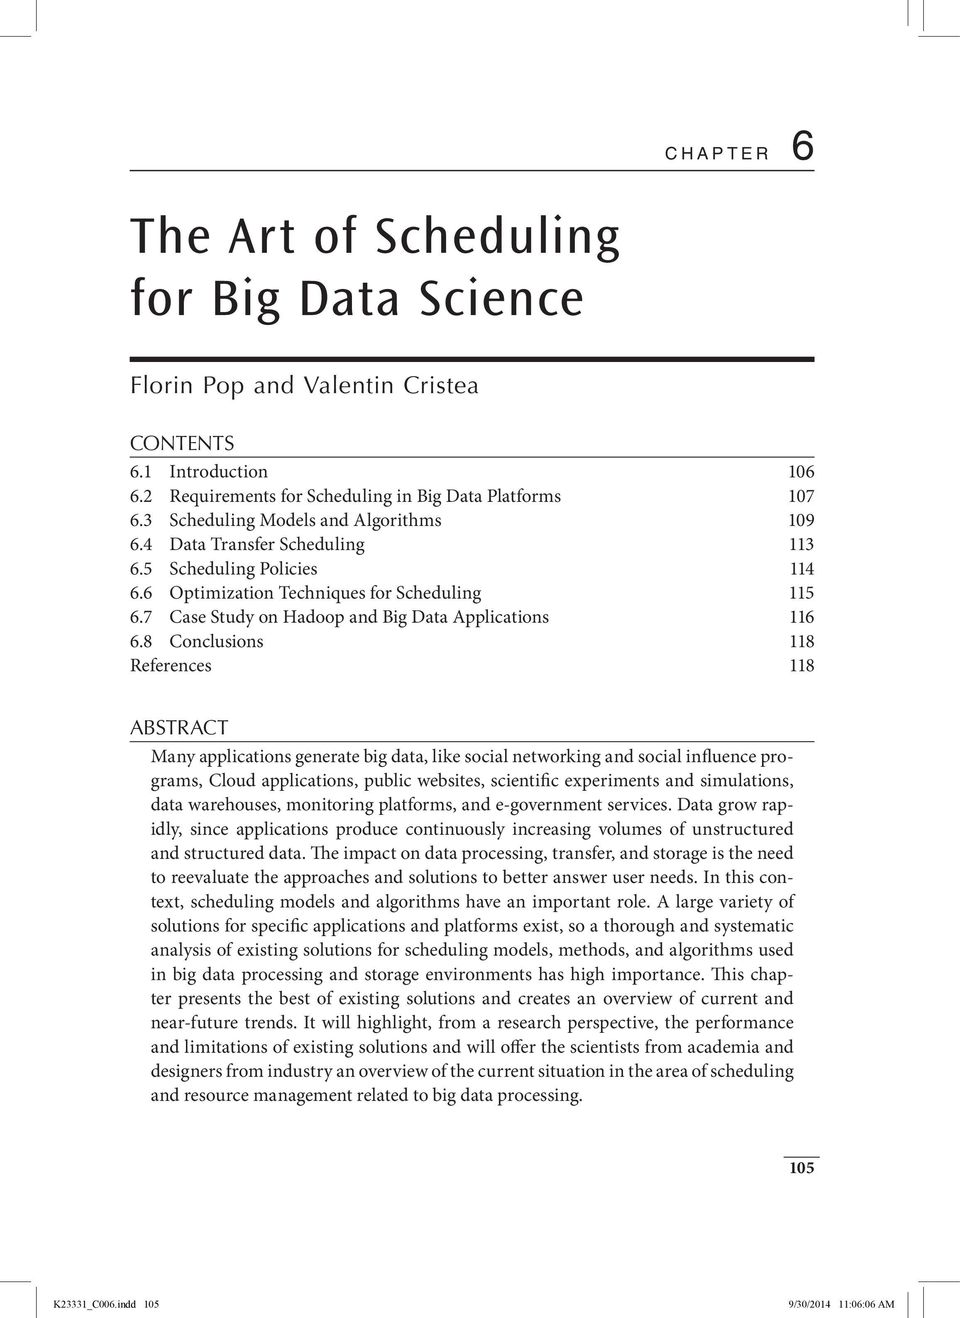 7 Case Study on Hadoop and Big Data Applications 116 6.